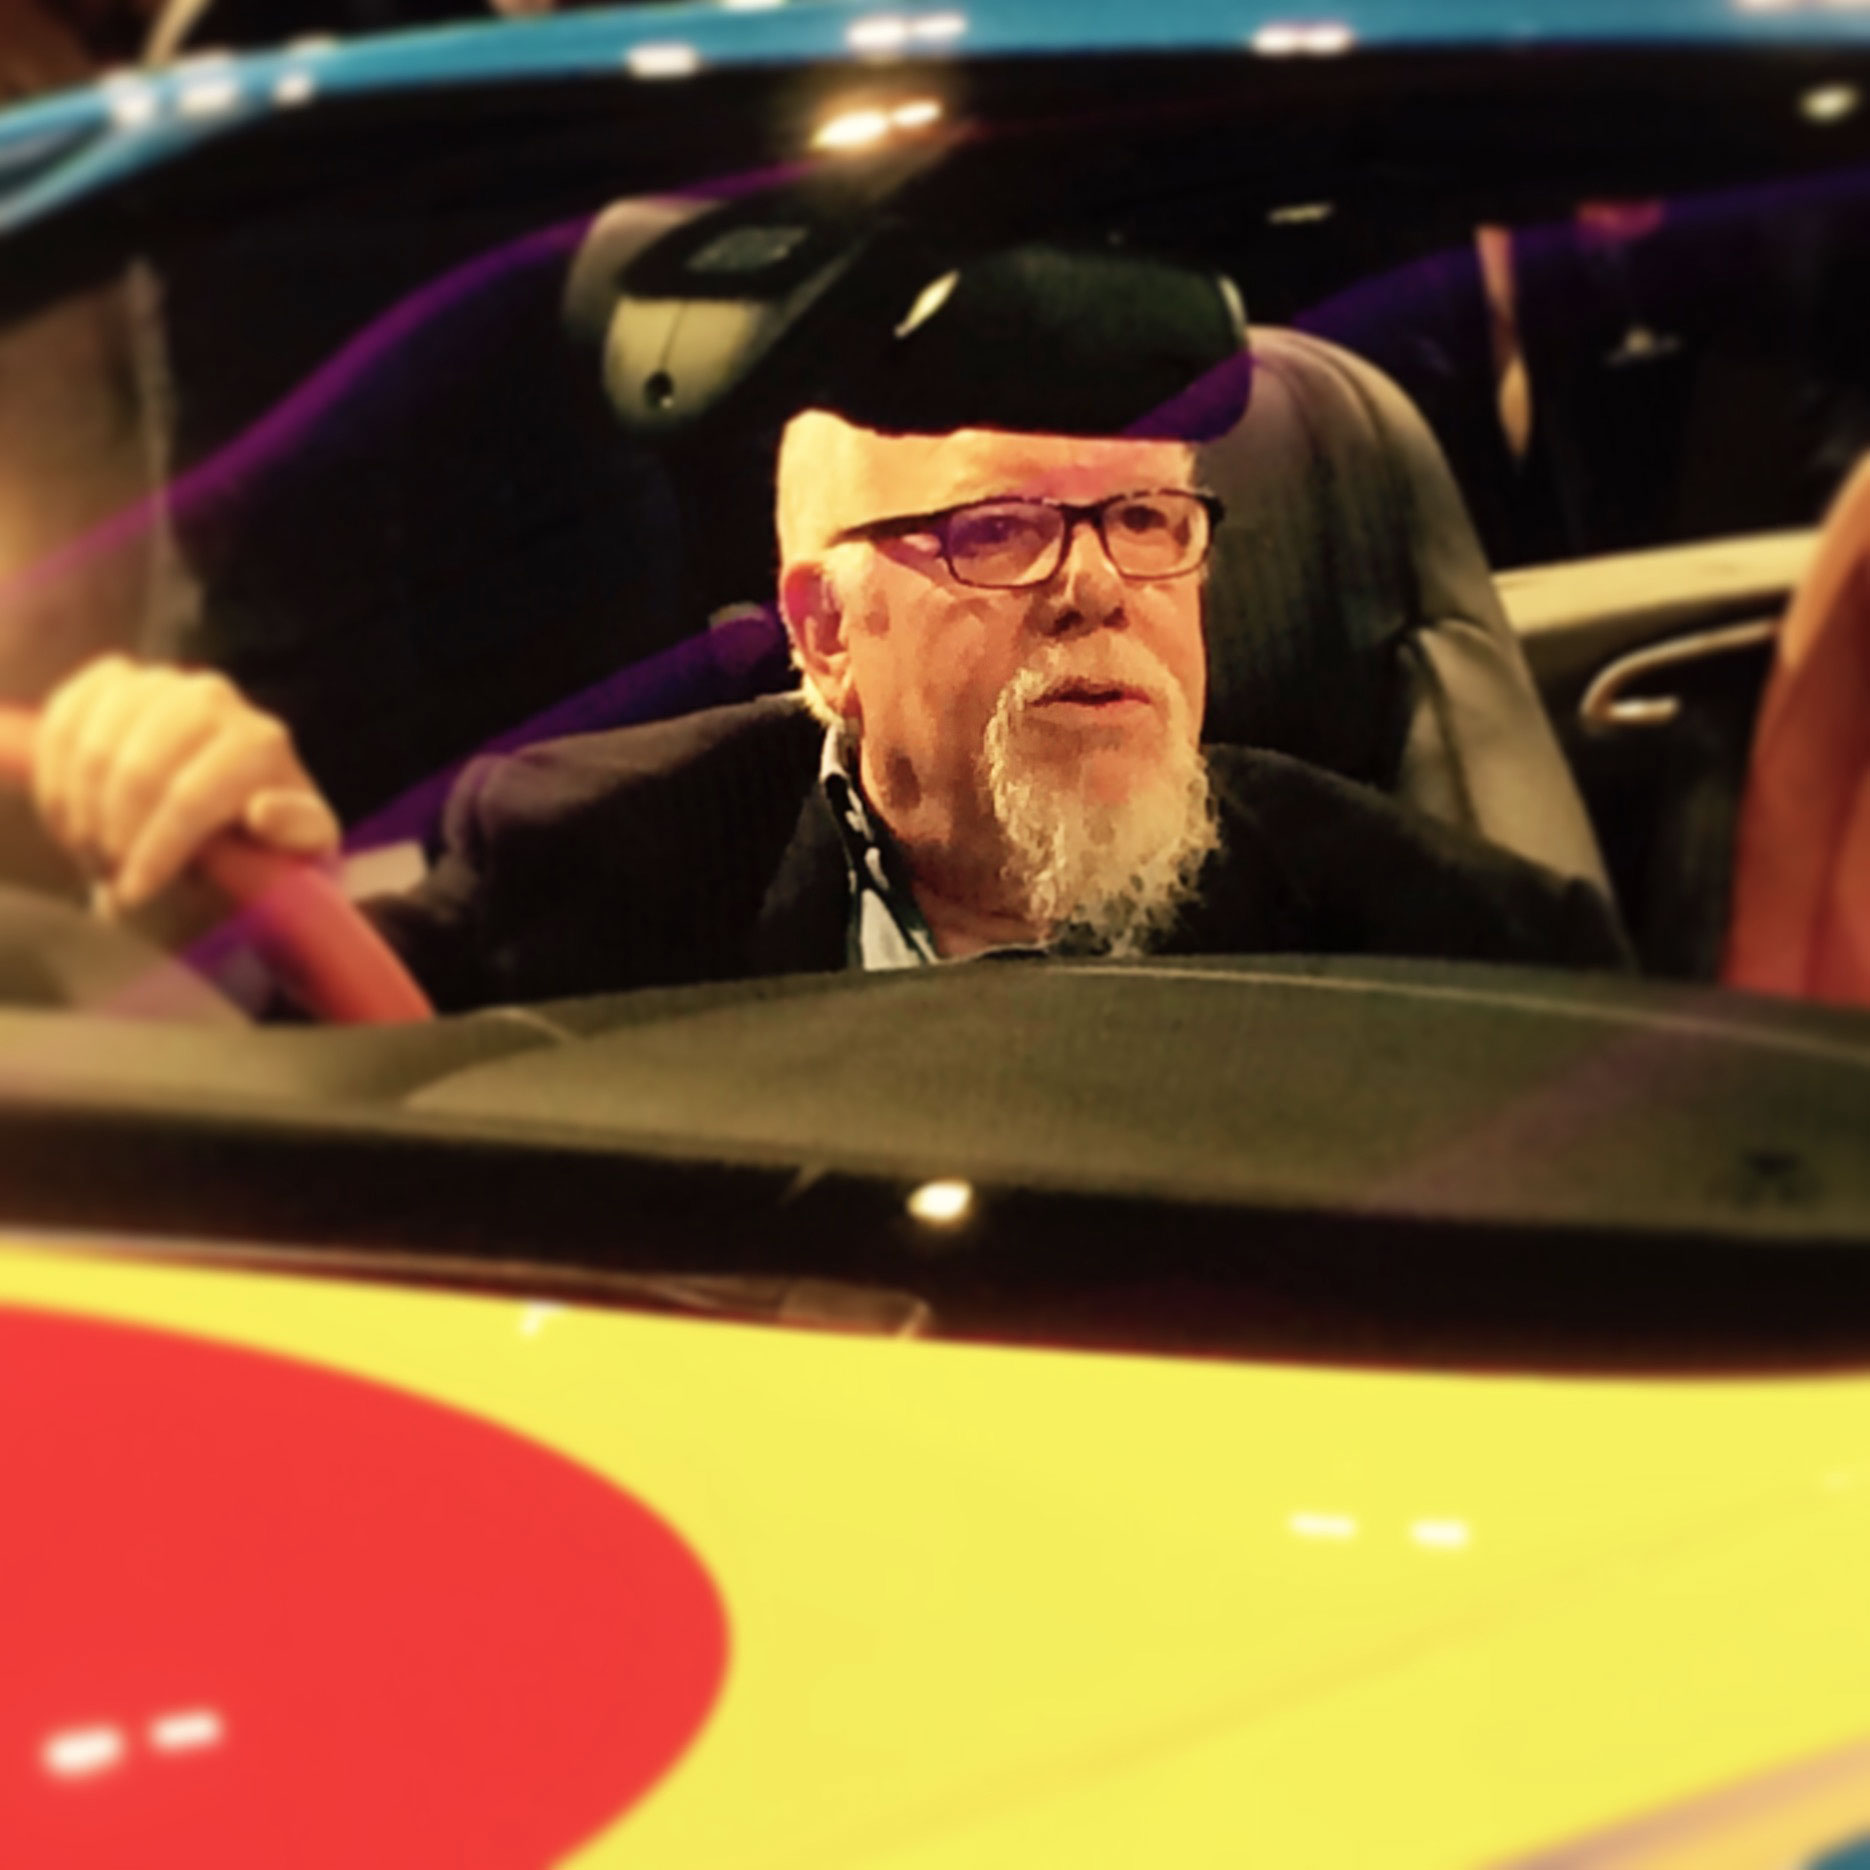 Sir Peter Blake at the wheel of the Bentley V8